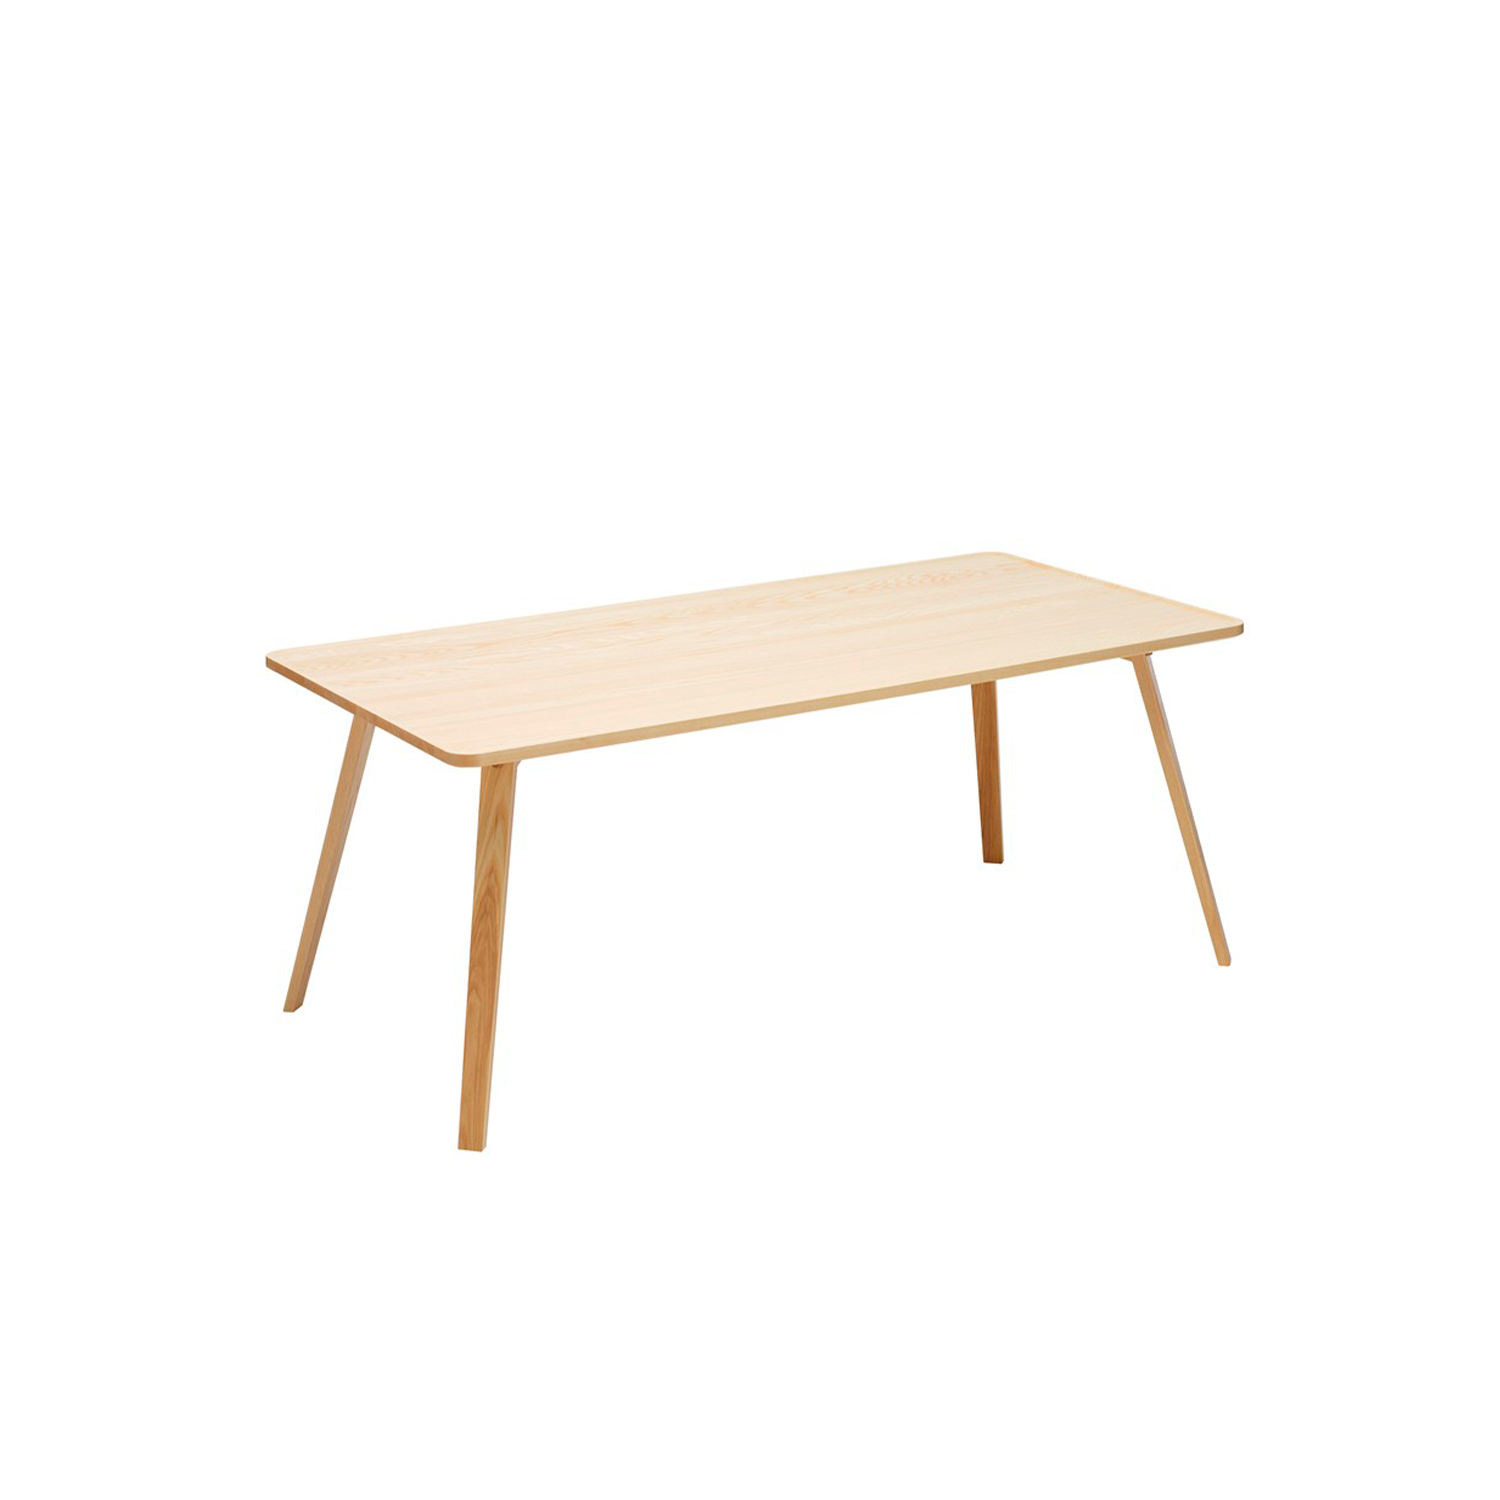 Mill Rectangular Table - Mill (2012) is a table with a solid wooden top and legs. The tabletop has been milled down to produce its distinctive appearance. Mill is available with a round, square or rectangular top in a number of different sizes and in heights of 460, 590 and 720 mm. The table is made of solid wood, so it can be sanded down and relacquered a number of times, making it suitable for use in settings where it is subjected to a lot of wear and tear.  Mill comes in a choice of oak, birch, ash, standard stains on ash and white glazed oak or ash. The table is also available in standard colors with tabletop made in MDF. Special sizes and other finishes upon request. You can use Mill to furnish cafés, kitchens and living rooms, or in hotels, schools, waiting areas etc.  Additional heights and dimensions are available, please see technical sheet attached and enquire for more details. | Matter of Stuff